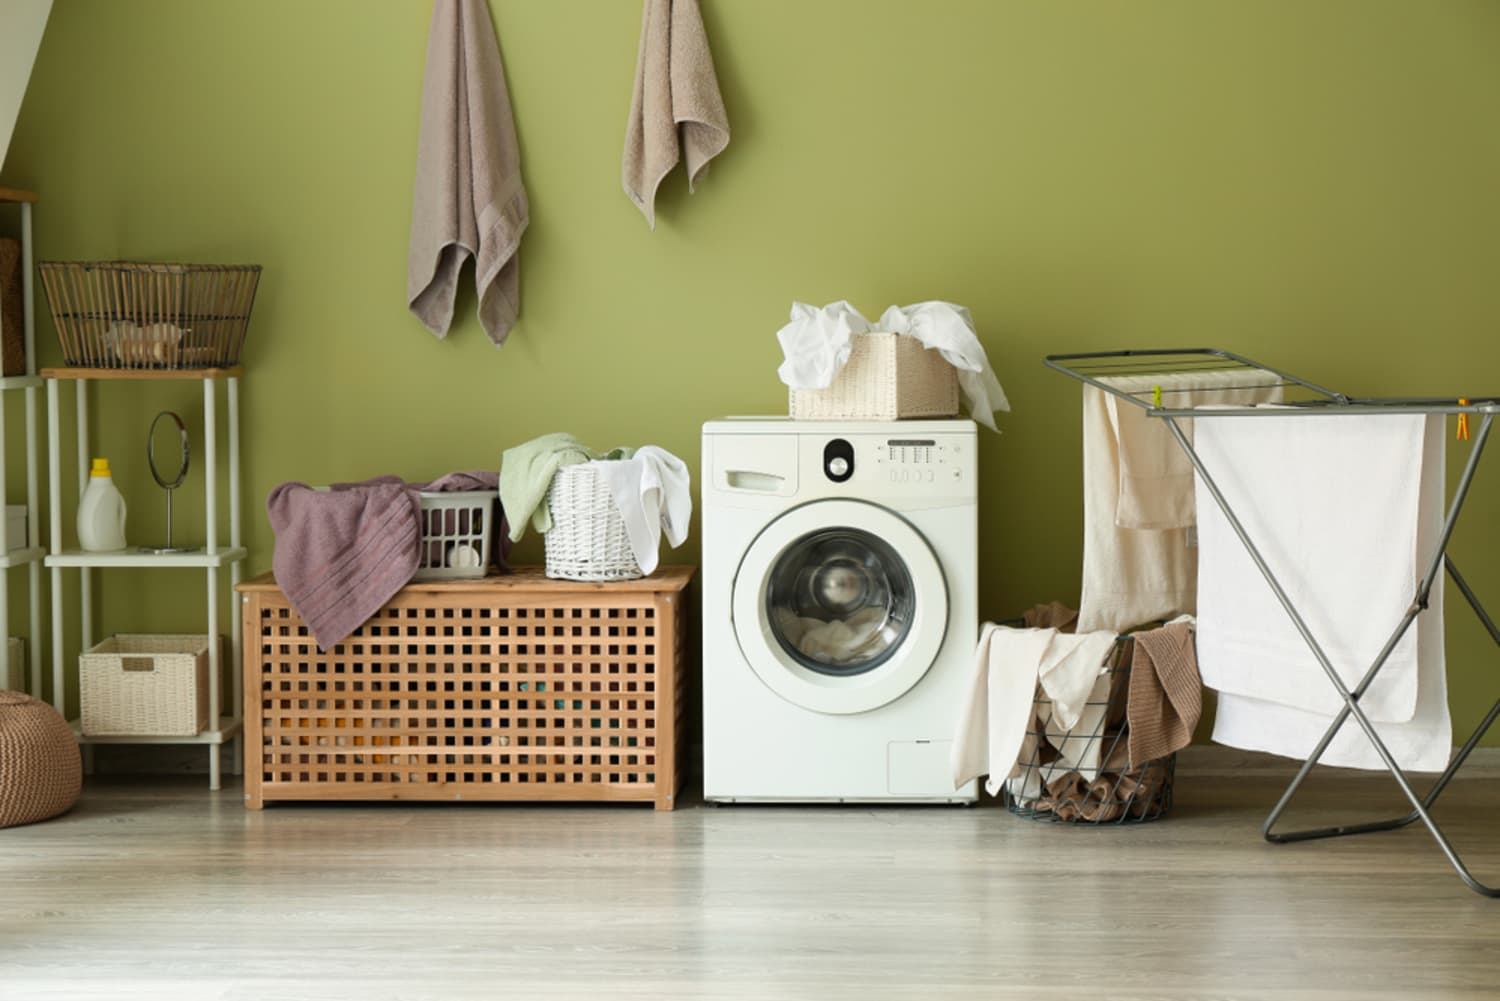 Double Your Laundry Room Storage Space with This Genius Hack